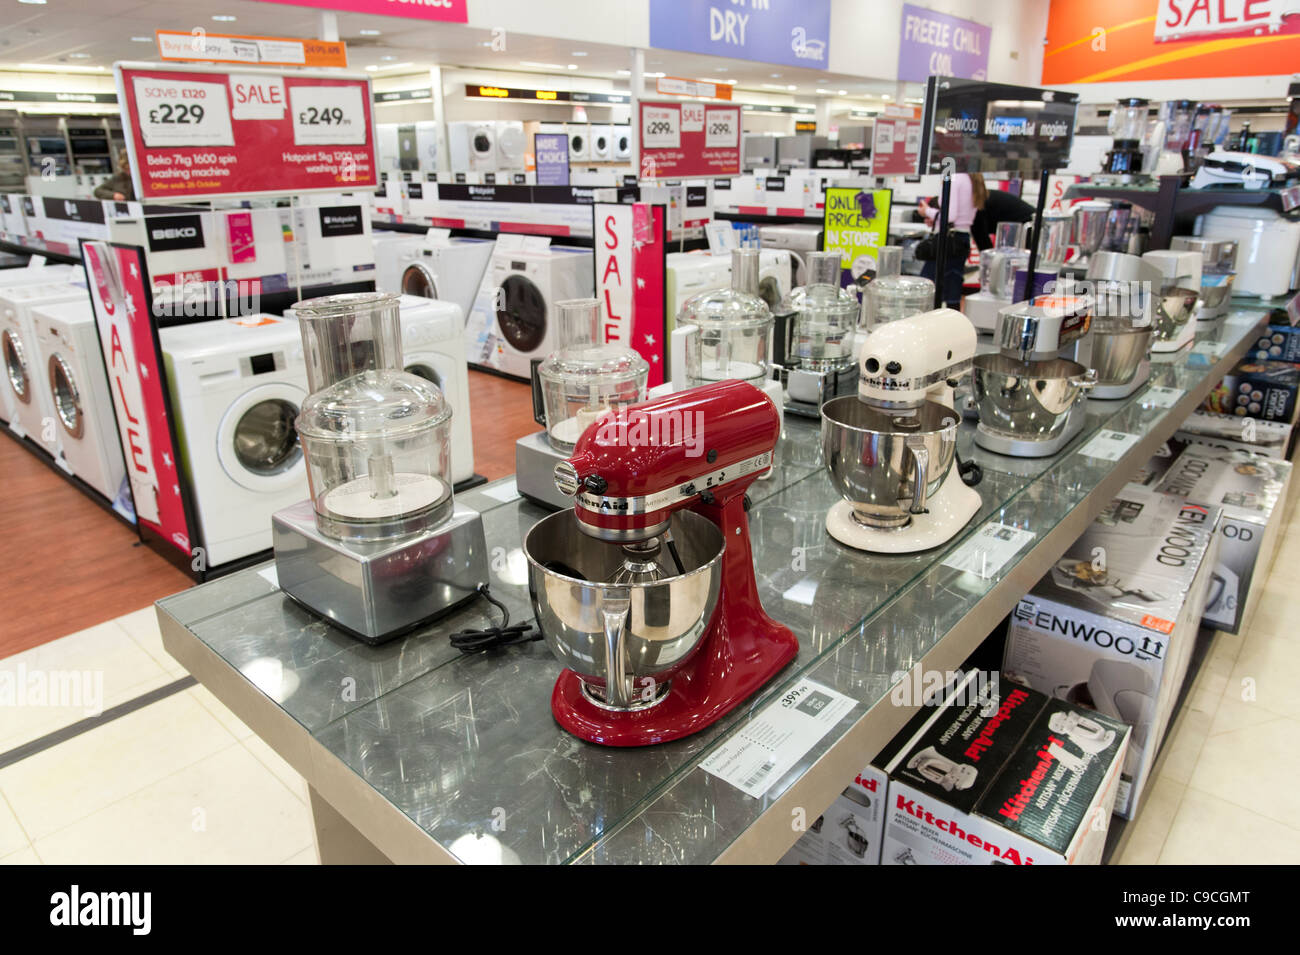 Electrical kitchen appliances in Comet store, London, England, UK ...